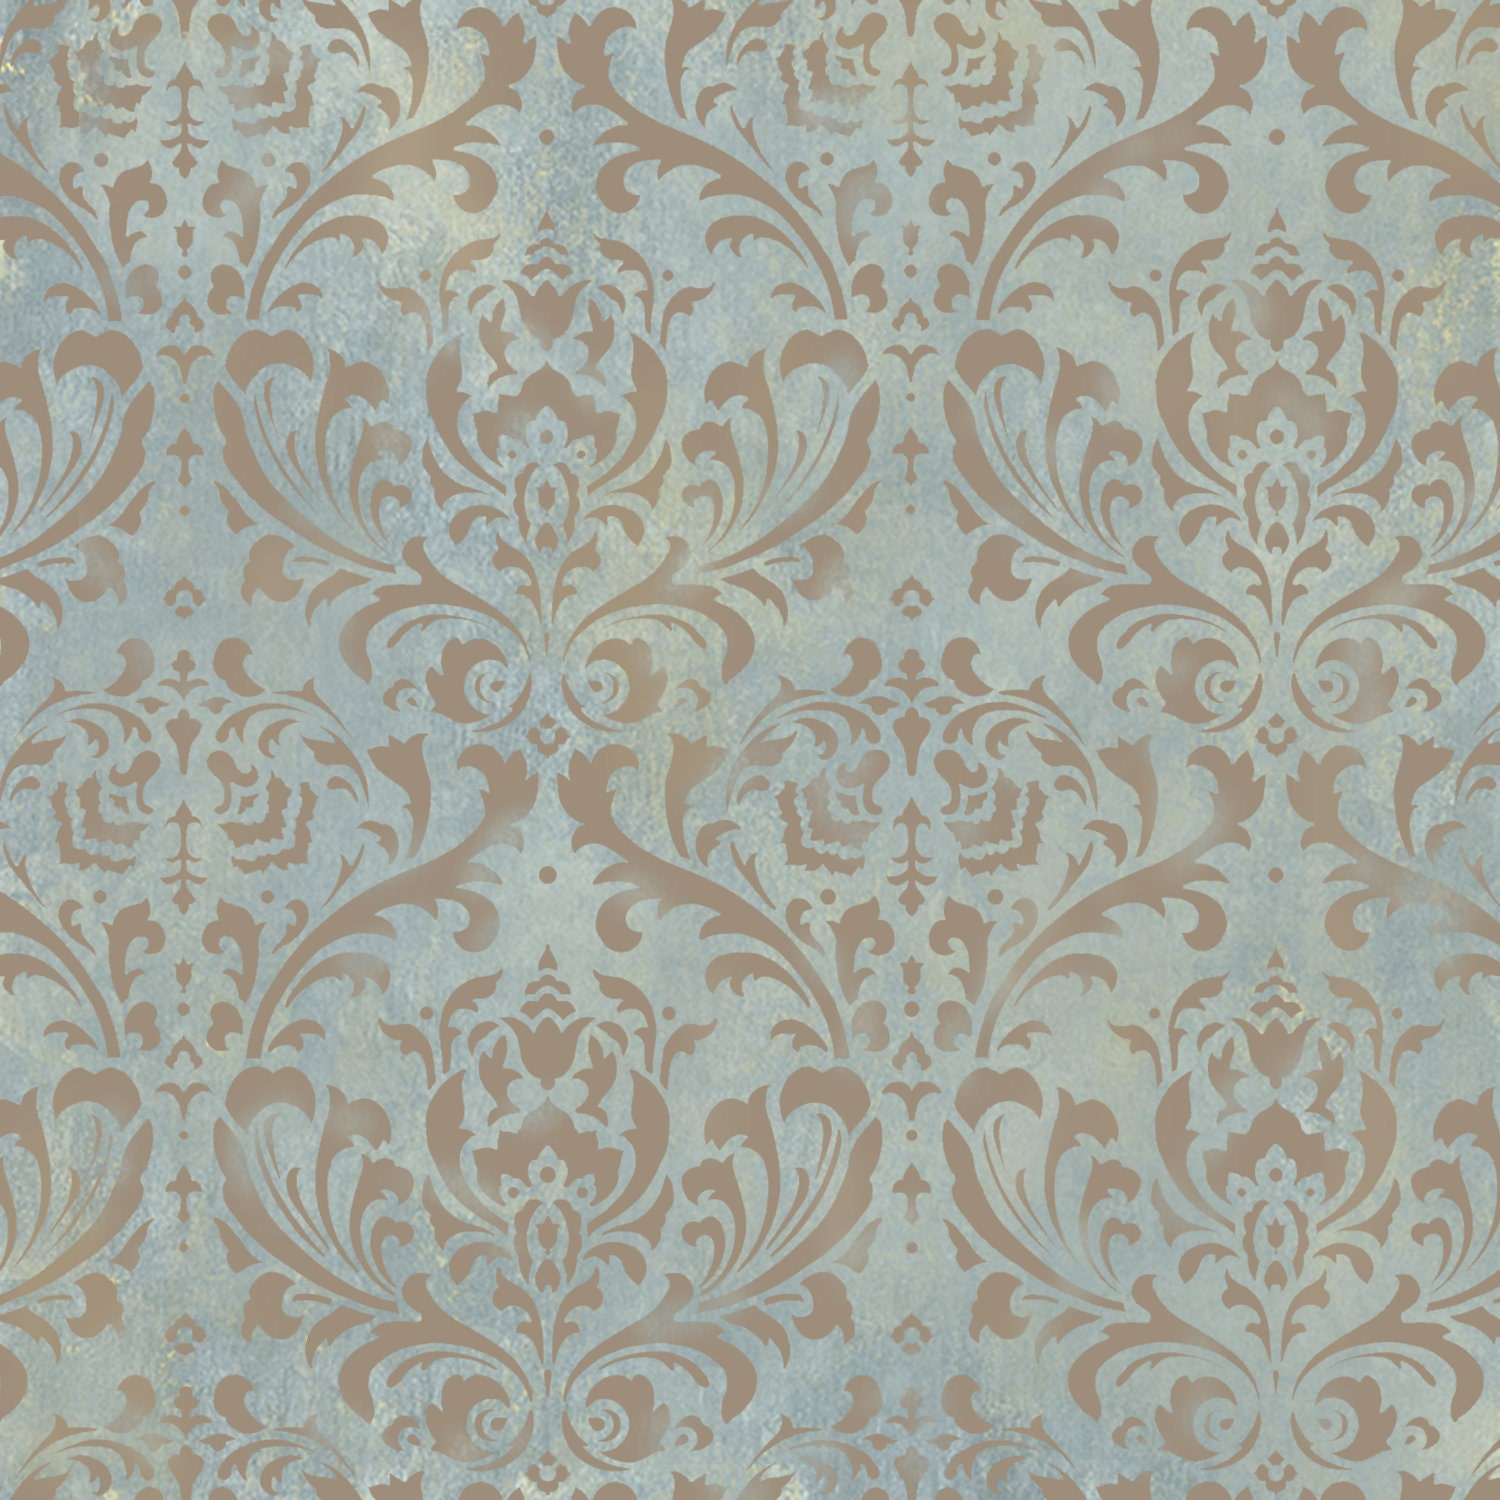 Anna damask stencil reusable damask stencils for walls diy details try wall stencils amipublicfo Gallery